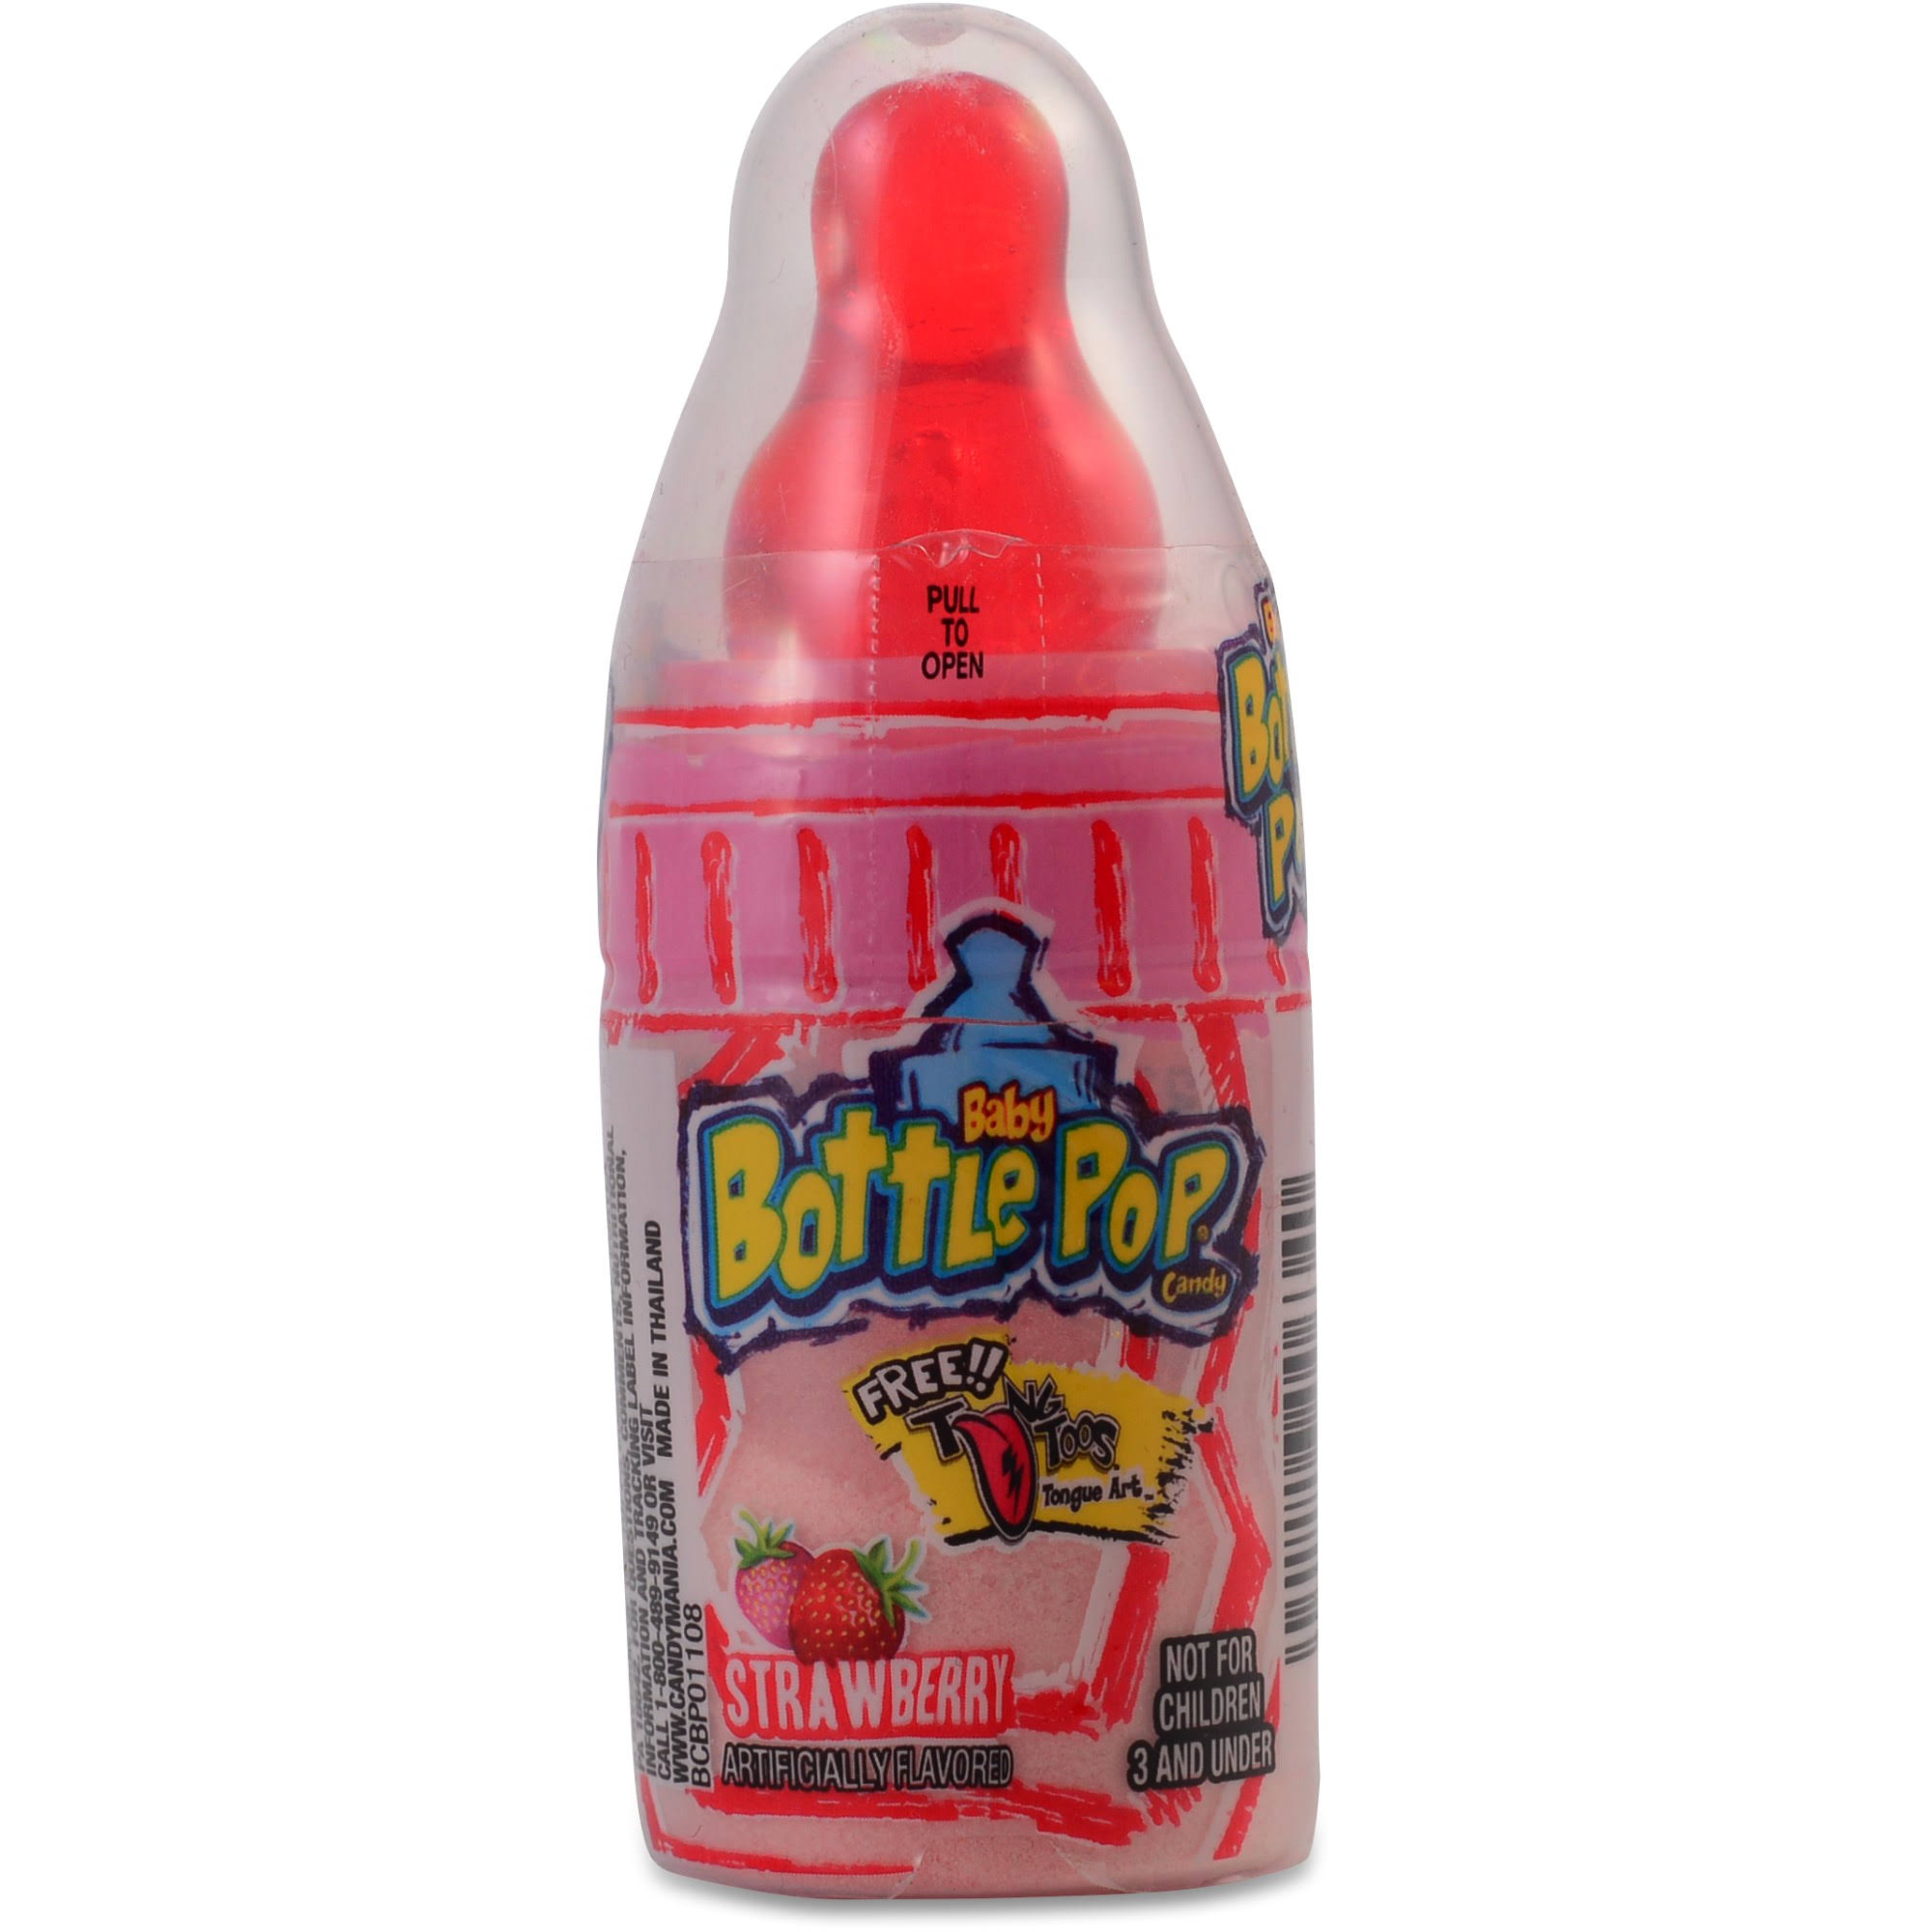 Baby Bottle Candy, Blue Raspberry - 0.85 oz